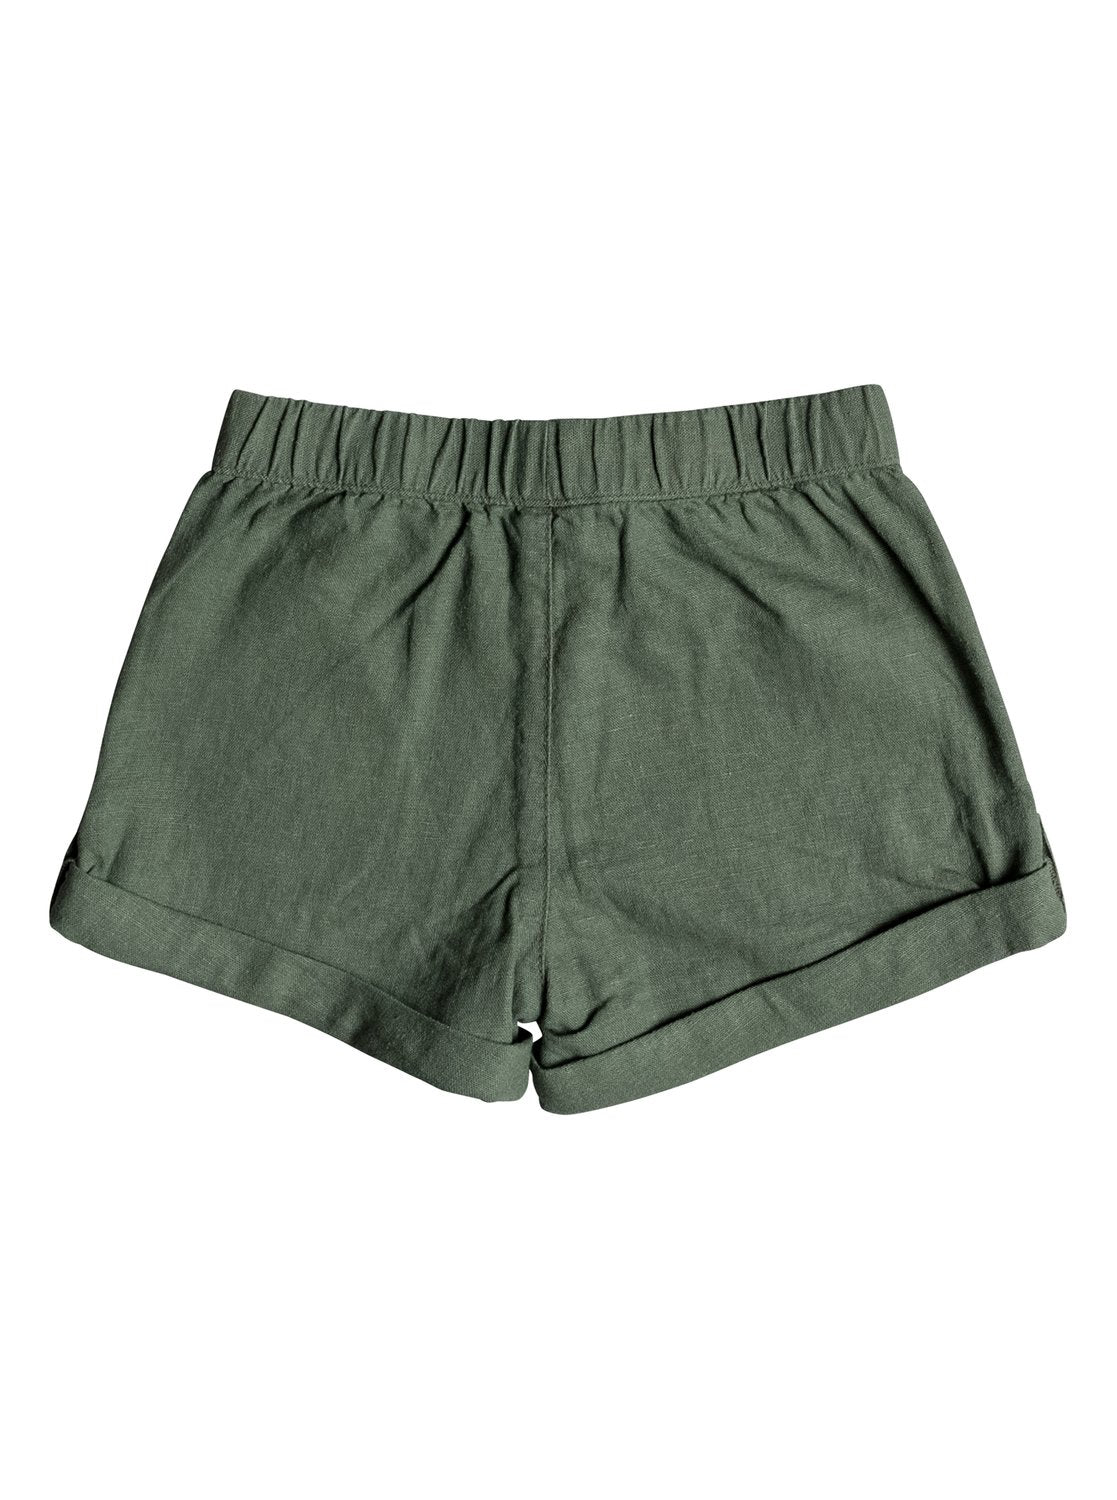 Roxy Girls Care Free Spirit Shorts In Olive